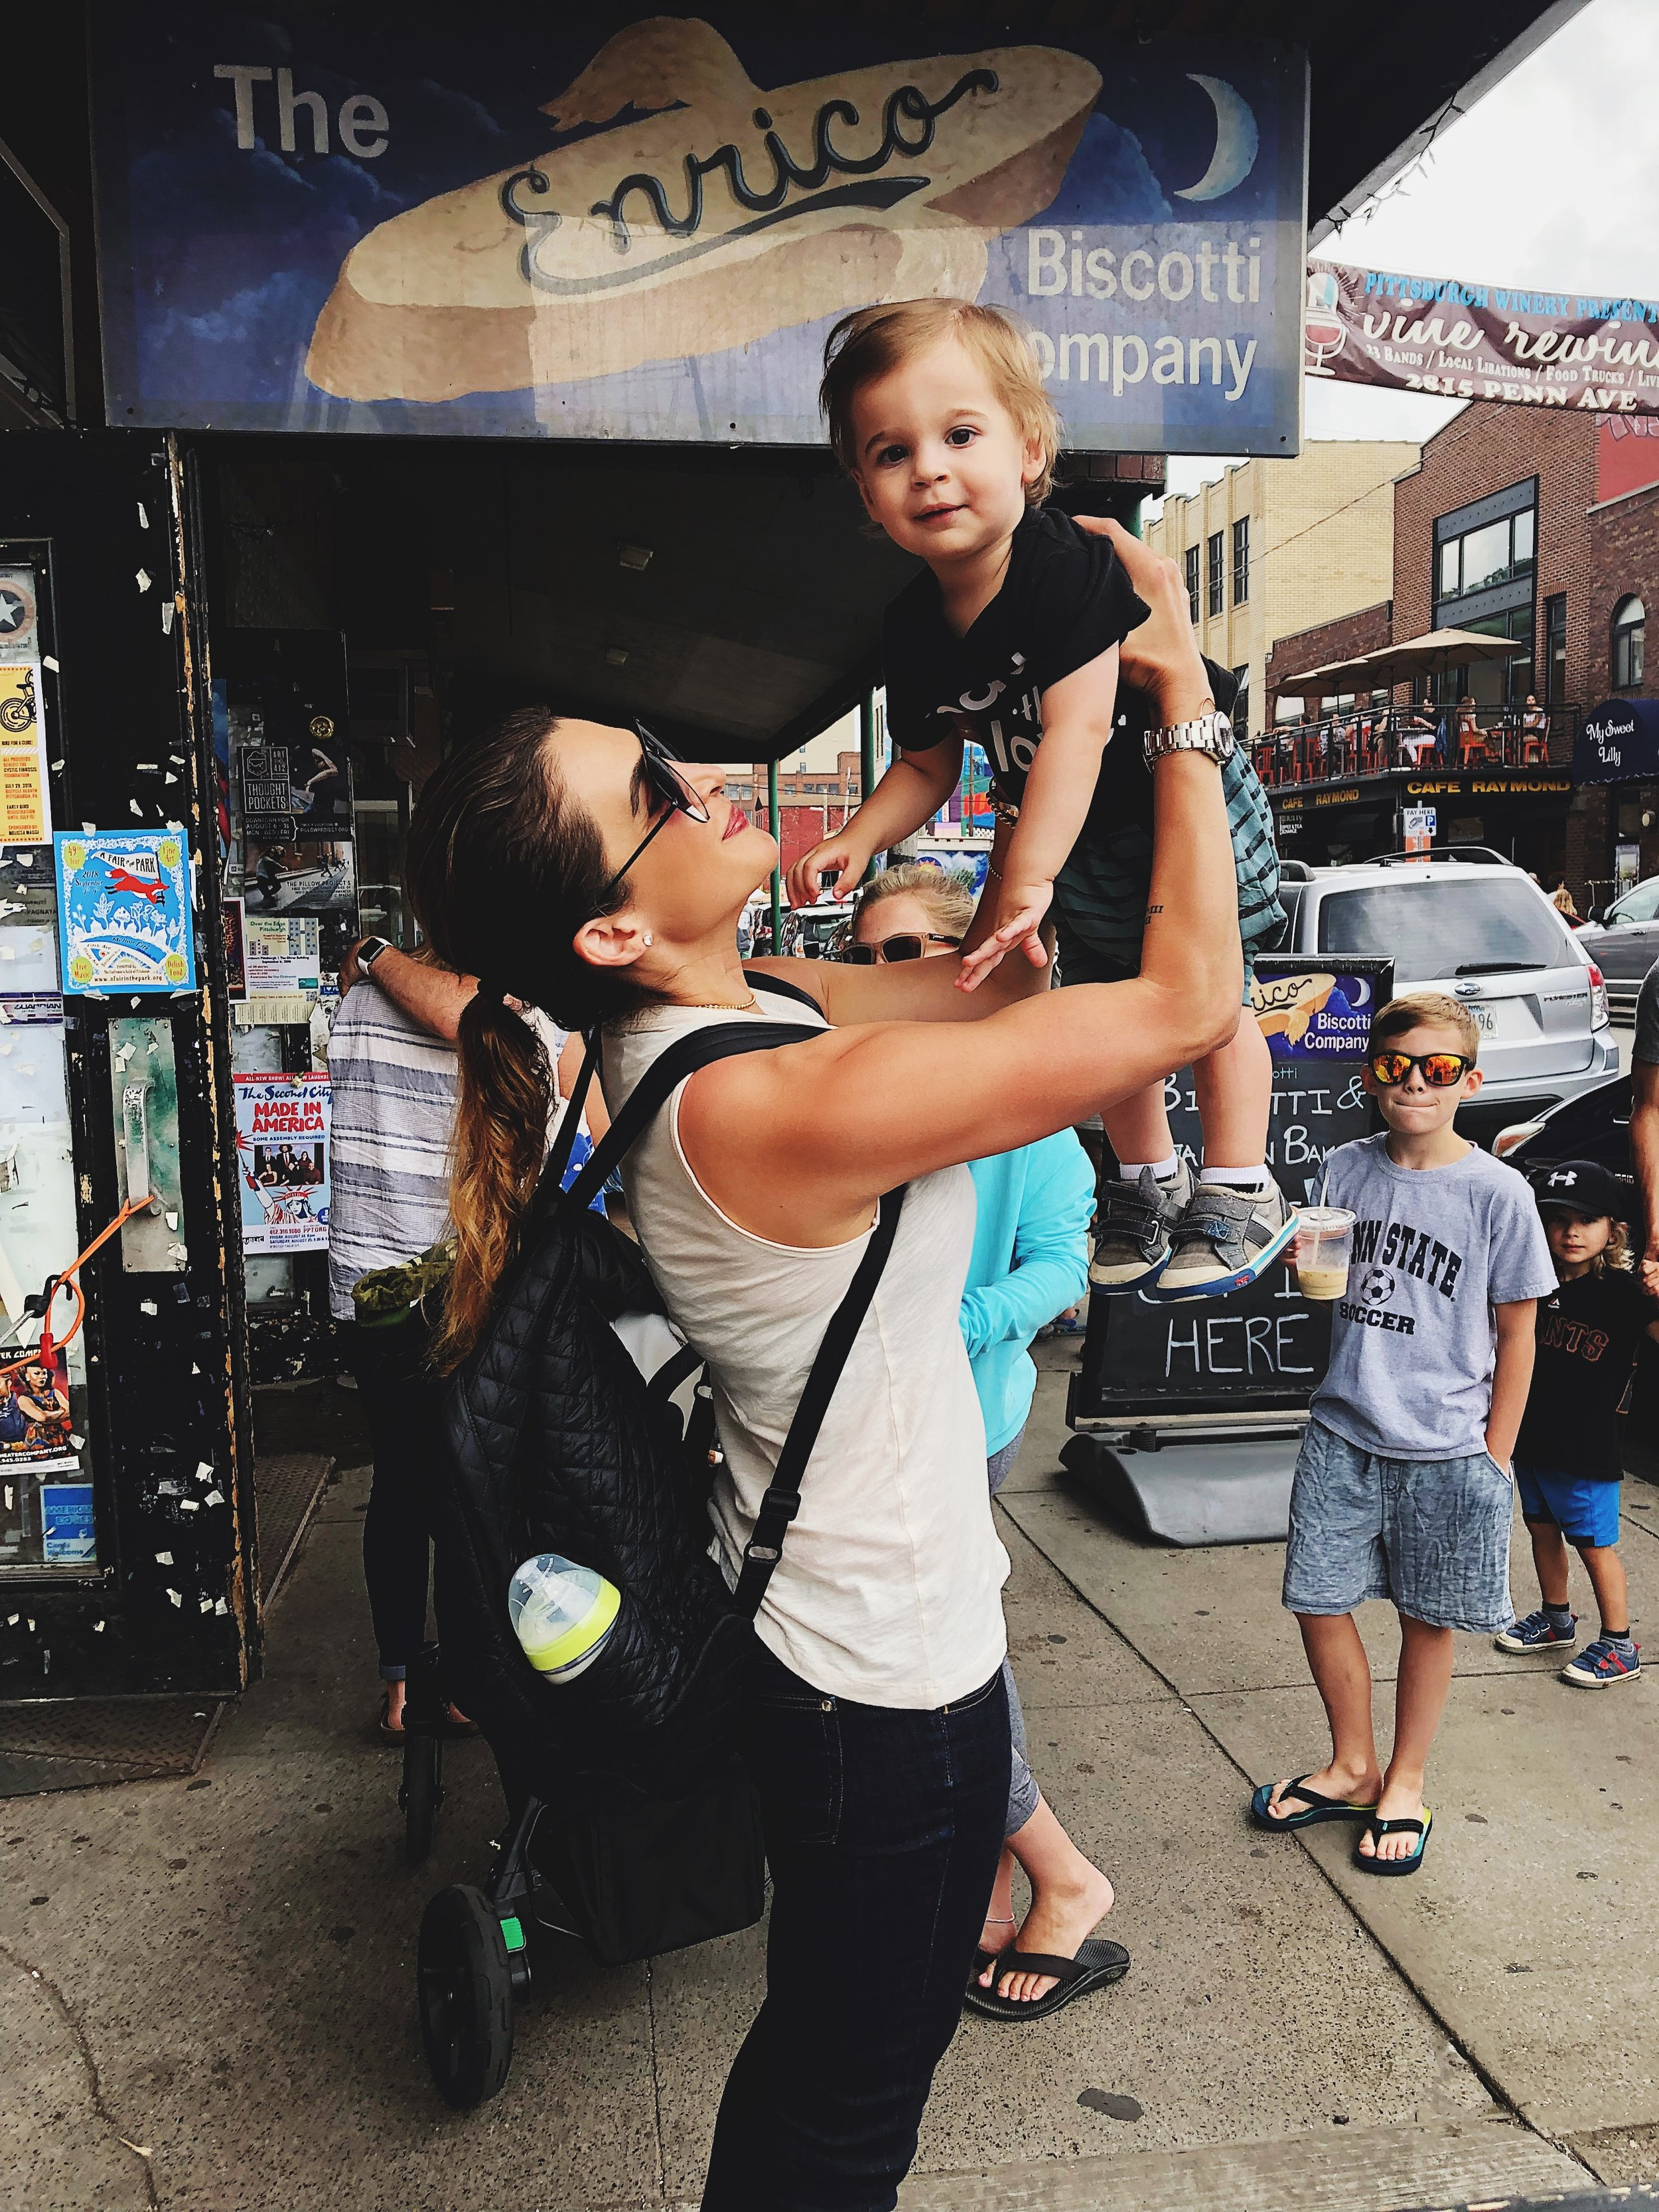 FLYING WITH CHILDREN: A PRACTICAL GUIDE TO MAINTAINING YOUR HEALTH - There are a couple of things you need to know about me when it comes to motherhood - it doesn't come easy (I.e., I wasn't born with that maternal instinct), and there's a high likelihood I'm unprepared for any given situation. Yes, I am the mom who takes their kid out for a meal and then forgets the wet wipes at home, or the mom who takes her kid on a road trip and forgets to bring snacks. Thankfully I've always remembered to bring diapers.But NOT when it comes to airplane travel. I'm prepared like a drill sergeant ready for battle. Because trust me, there is nothing is worse in life than an inconsolable baby on a flight, while dodging the stink eye from others (including other moms, like WTF!), all while trying to prevent yourself from going into full blown meltdown mode.So today I'm sharing with you some tips and tricks that HELP. They aren't fool proof, so don't get mad at me if they don't. But these tips were passed on to me, and have made flying with babies and toddlers MUCH easier. Hope you enjoy, and please leave me a comment below sharing some of your own favorite tips!